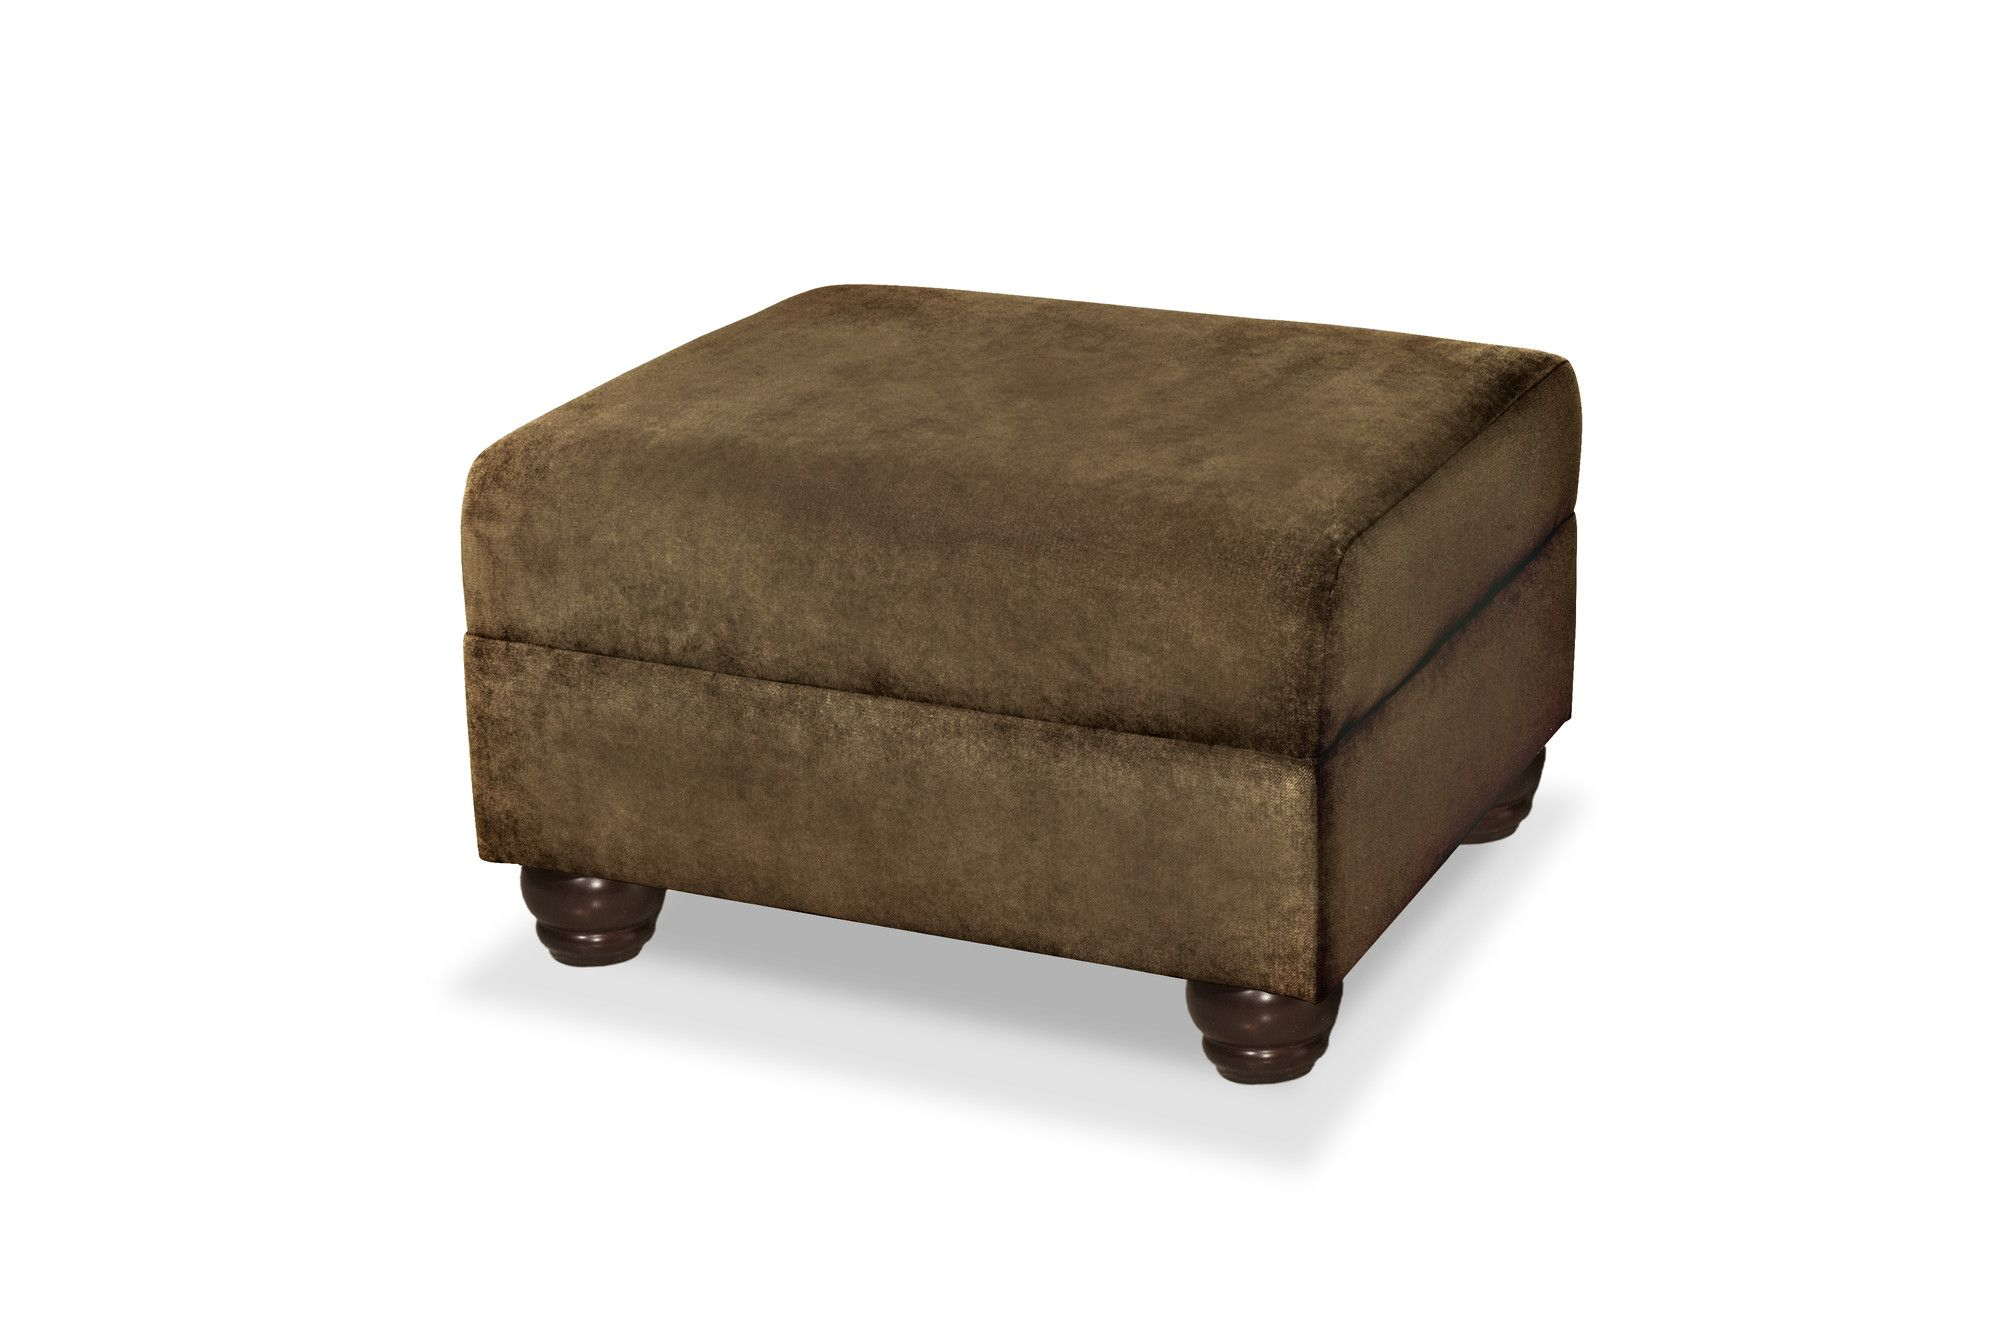 Sawyer Ottoman | Ottomans And Products With Regard To Maddox Oversized Sofa Chairs (View 12 of 25)